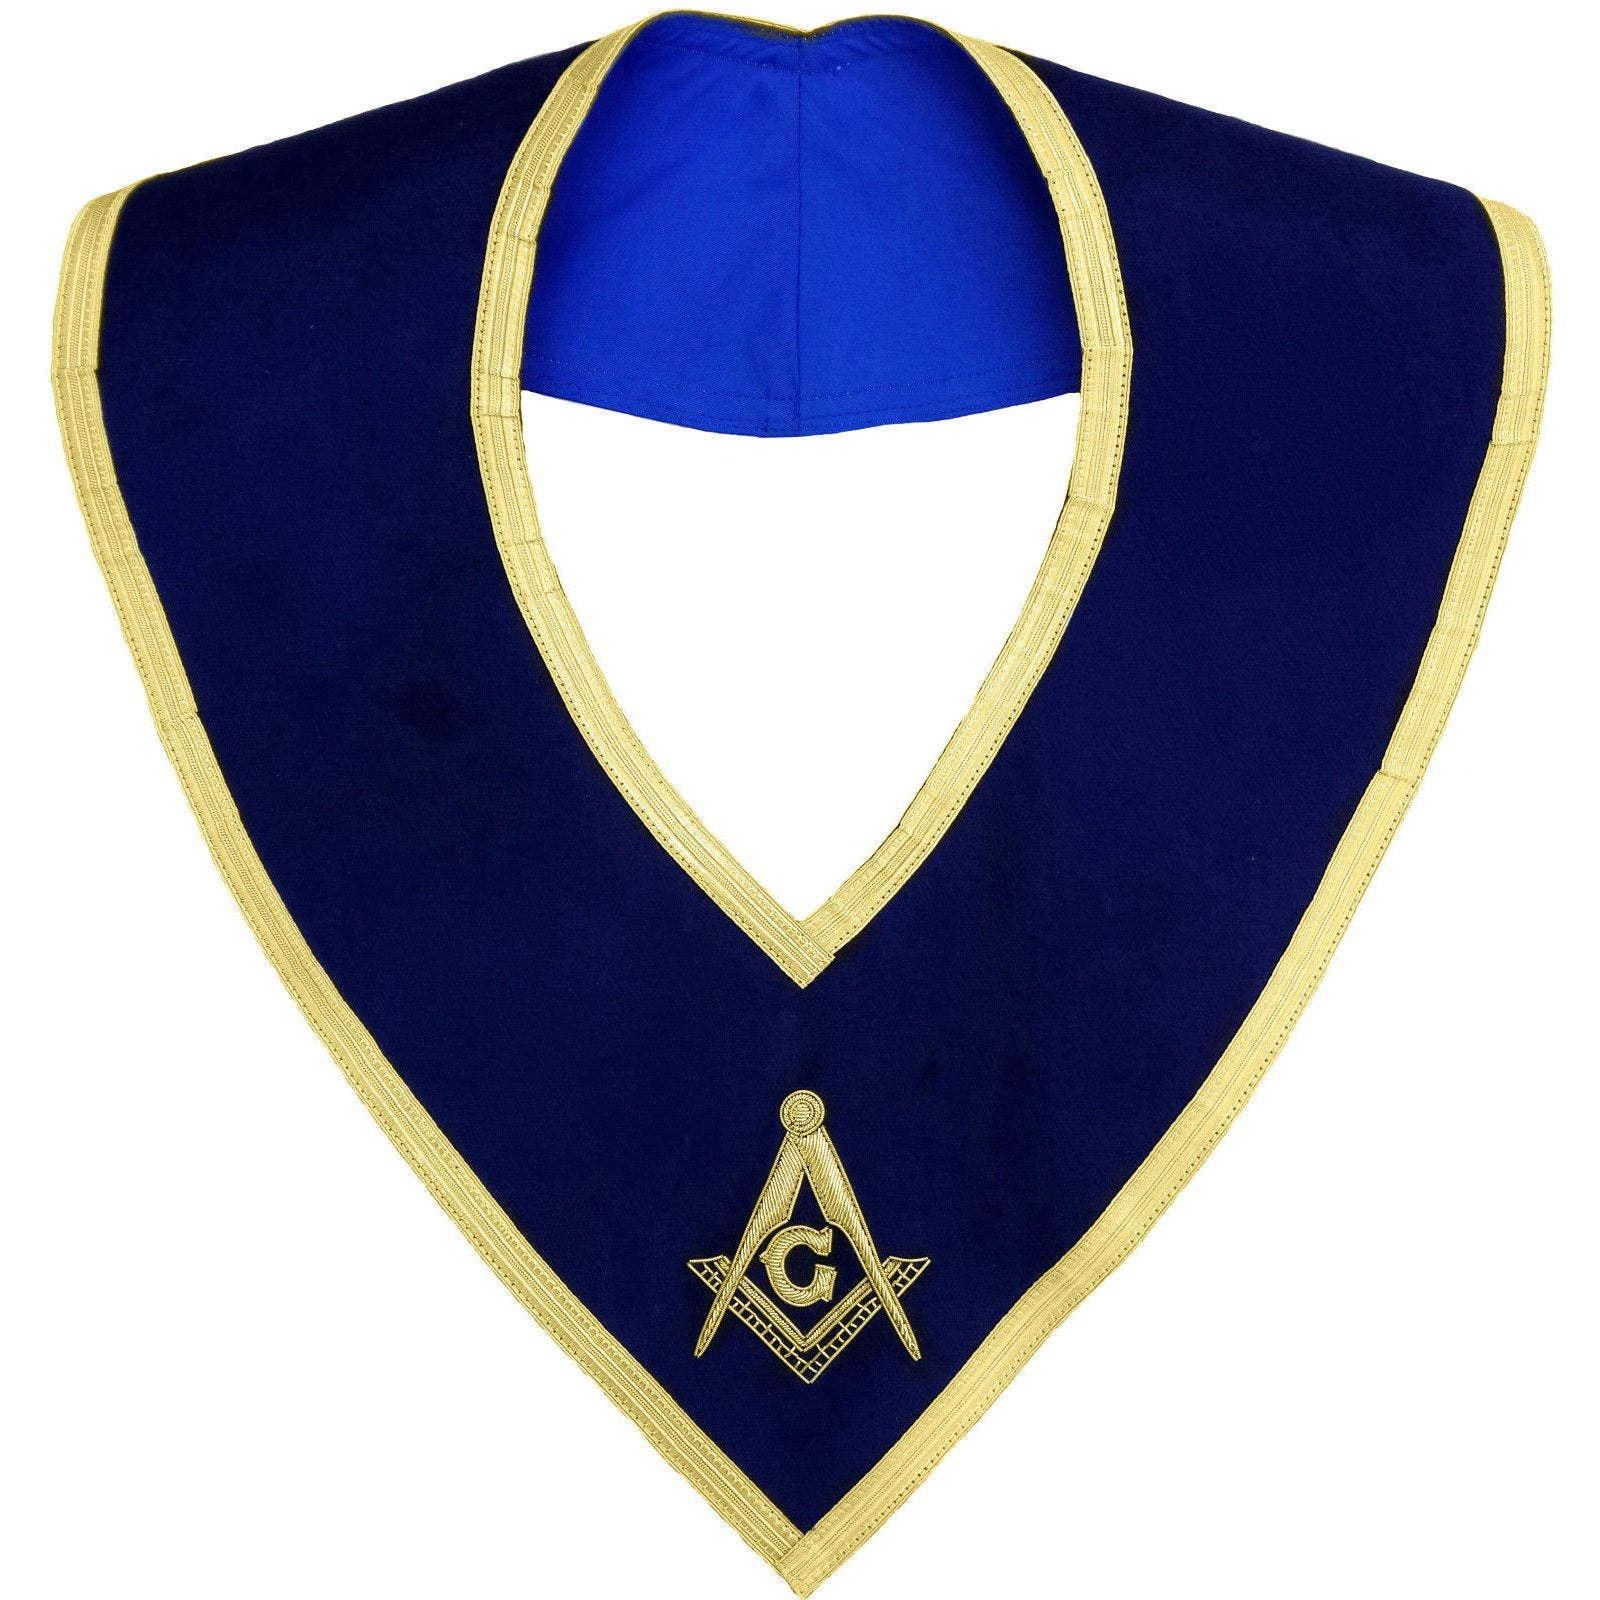 Masonic Master Mason Collar Gold on Blue Velvet Hand Embroidered - Bricks Masons